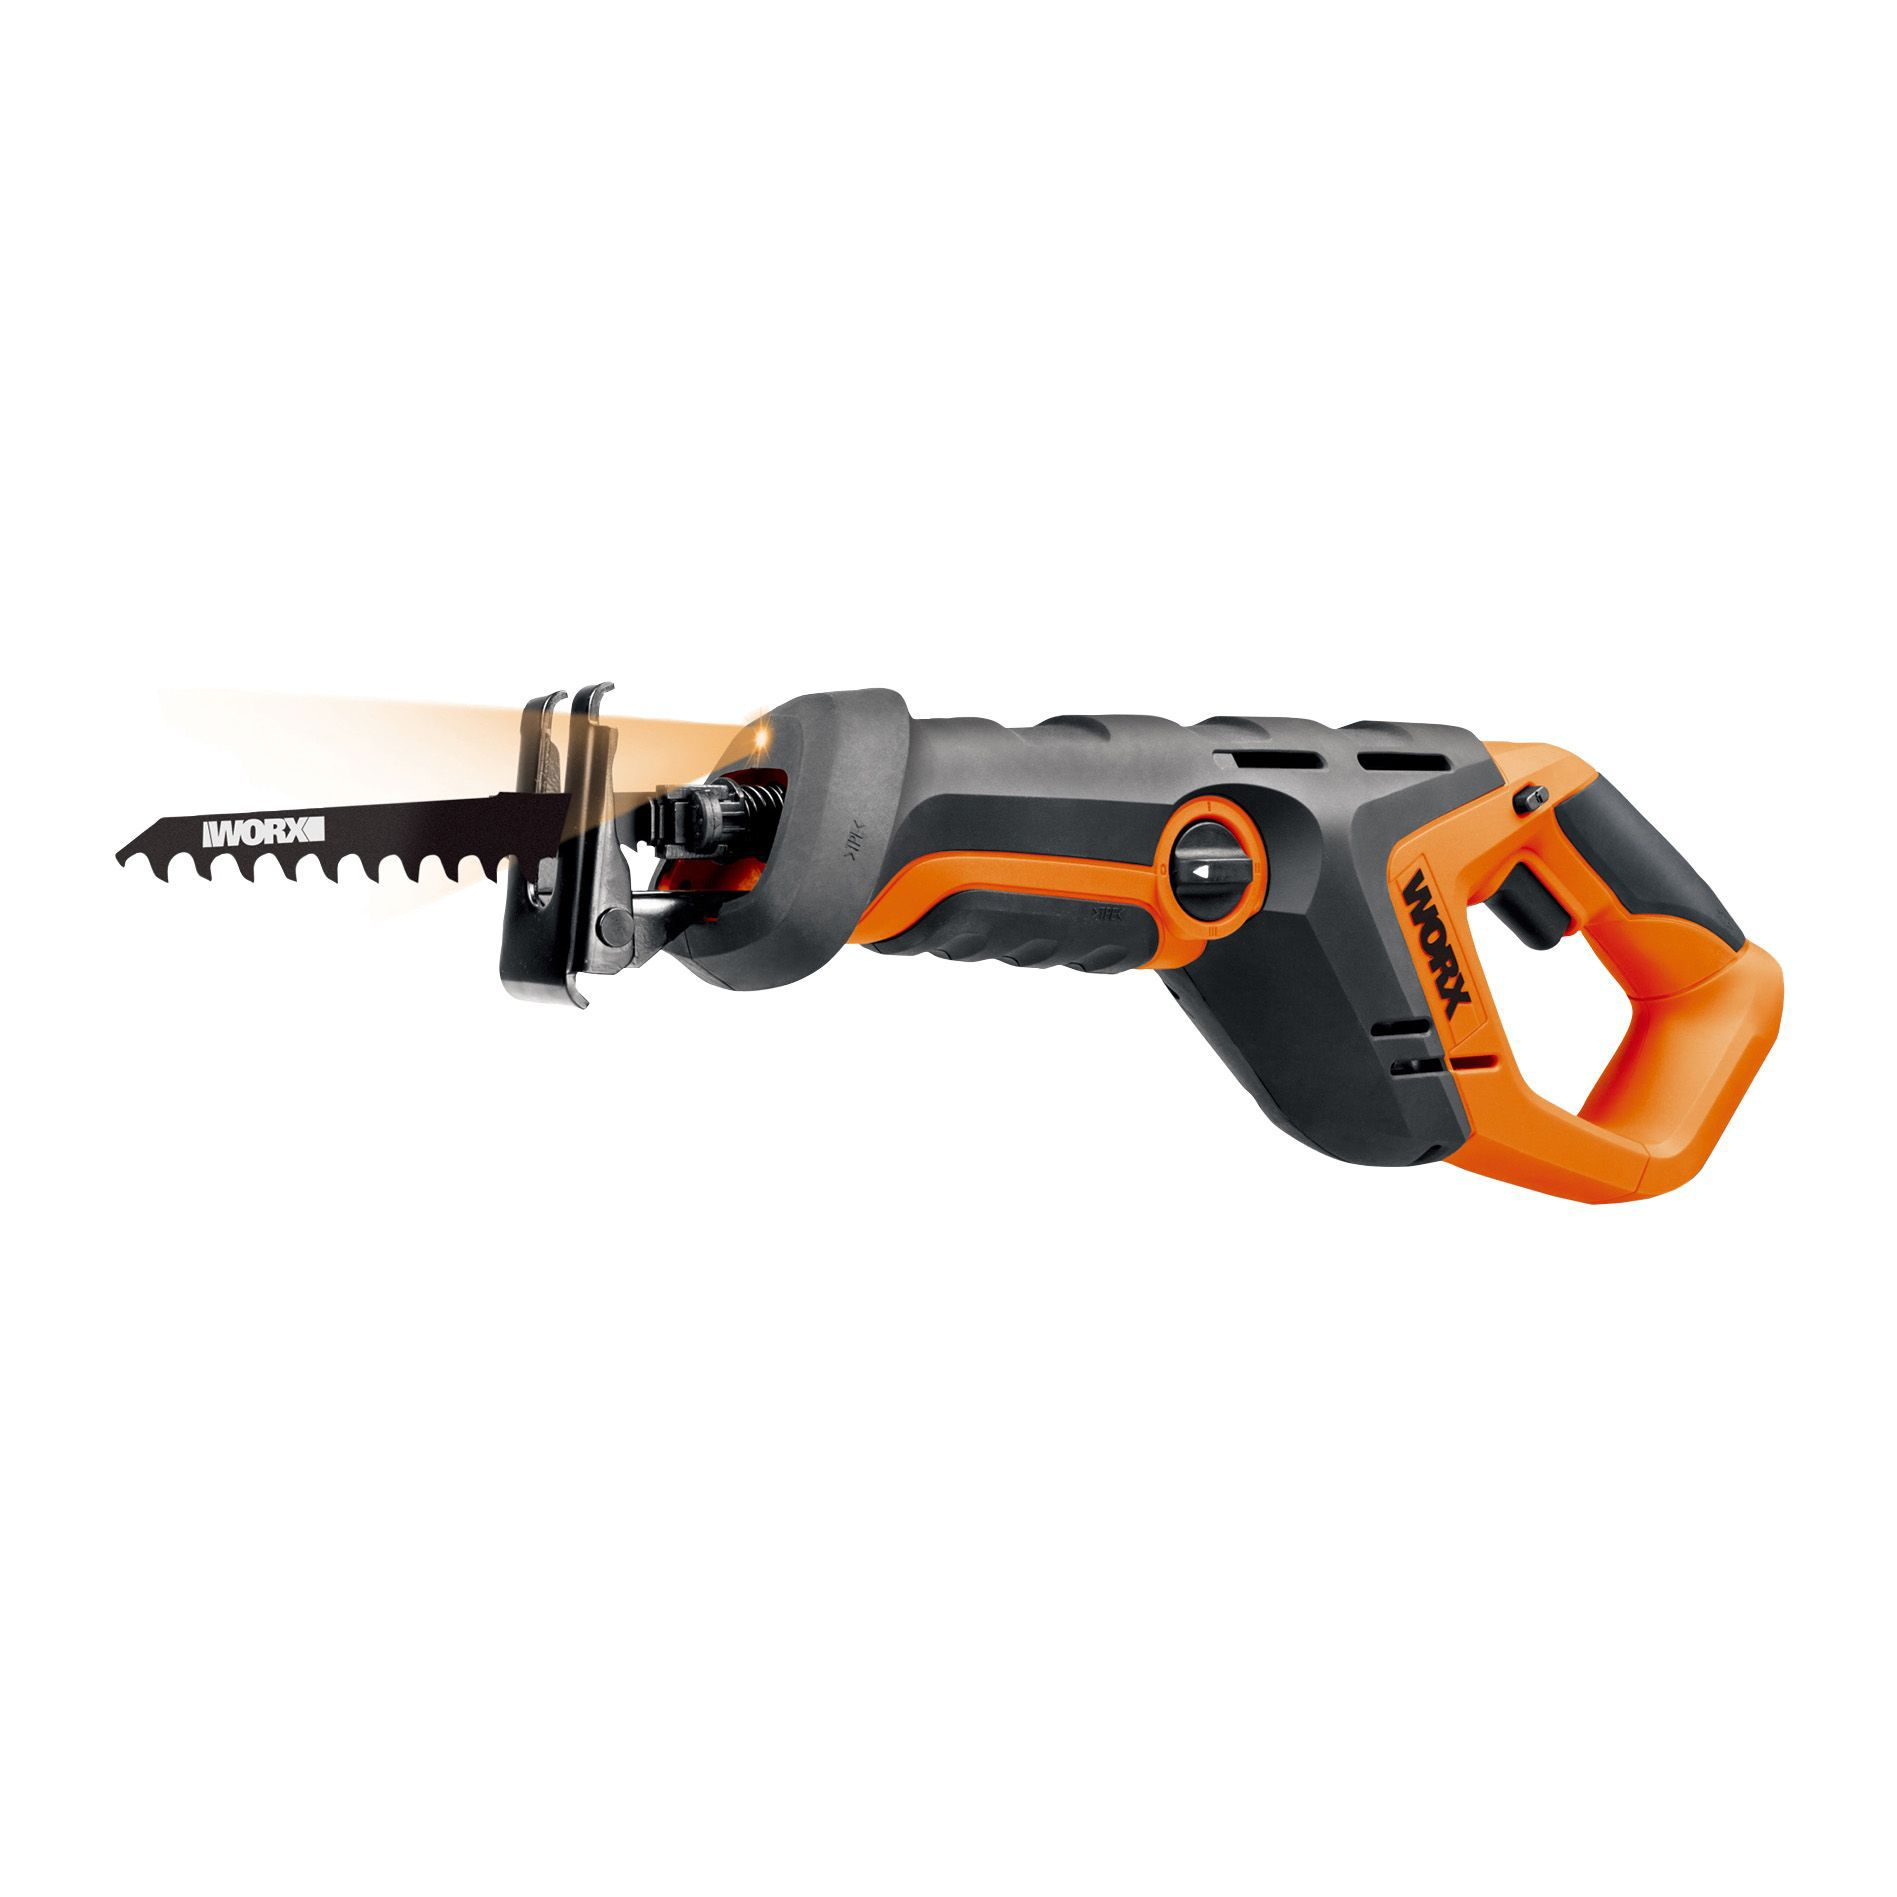 worx powershare 20v cordless reciprocating saw wx508 9 bare departments tradepoint. Black Bedroom Furniture Sets. Home Design Ideas